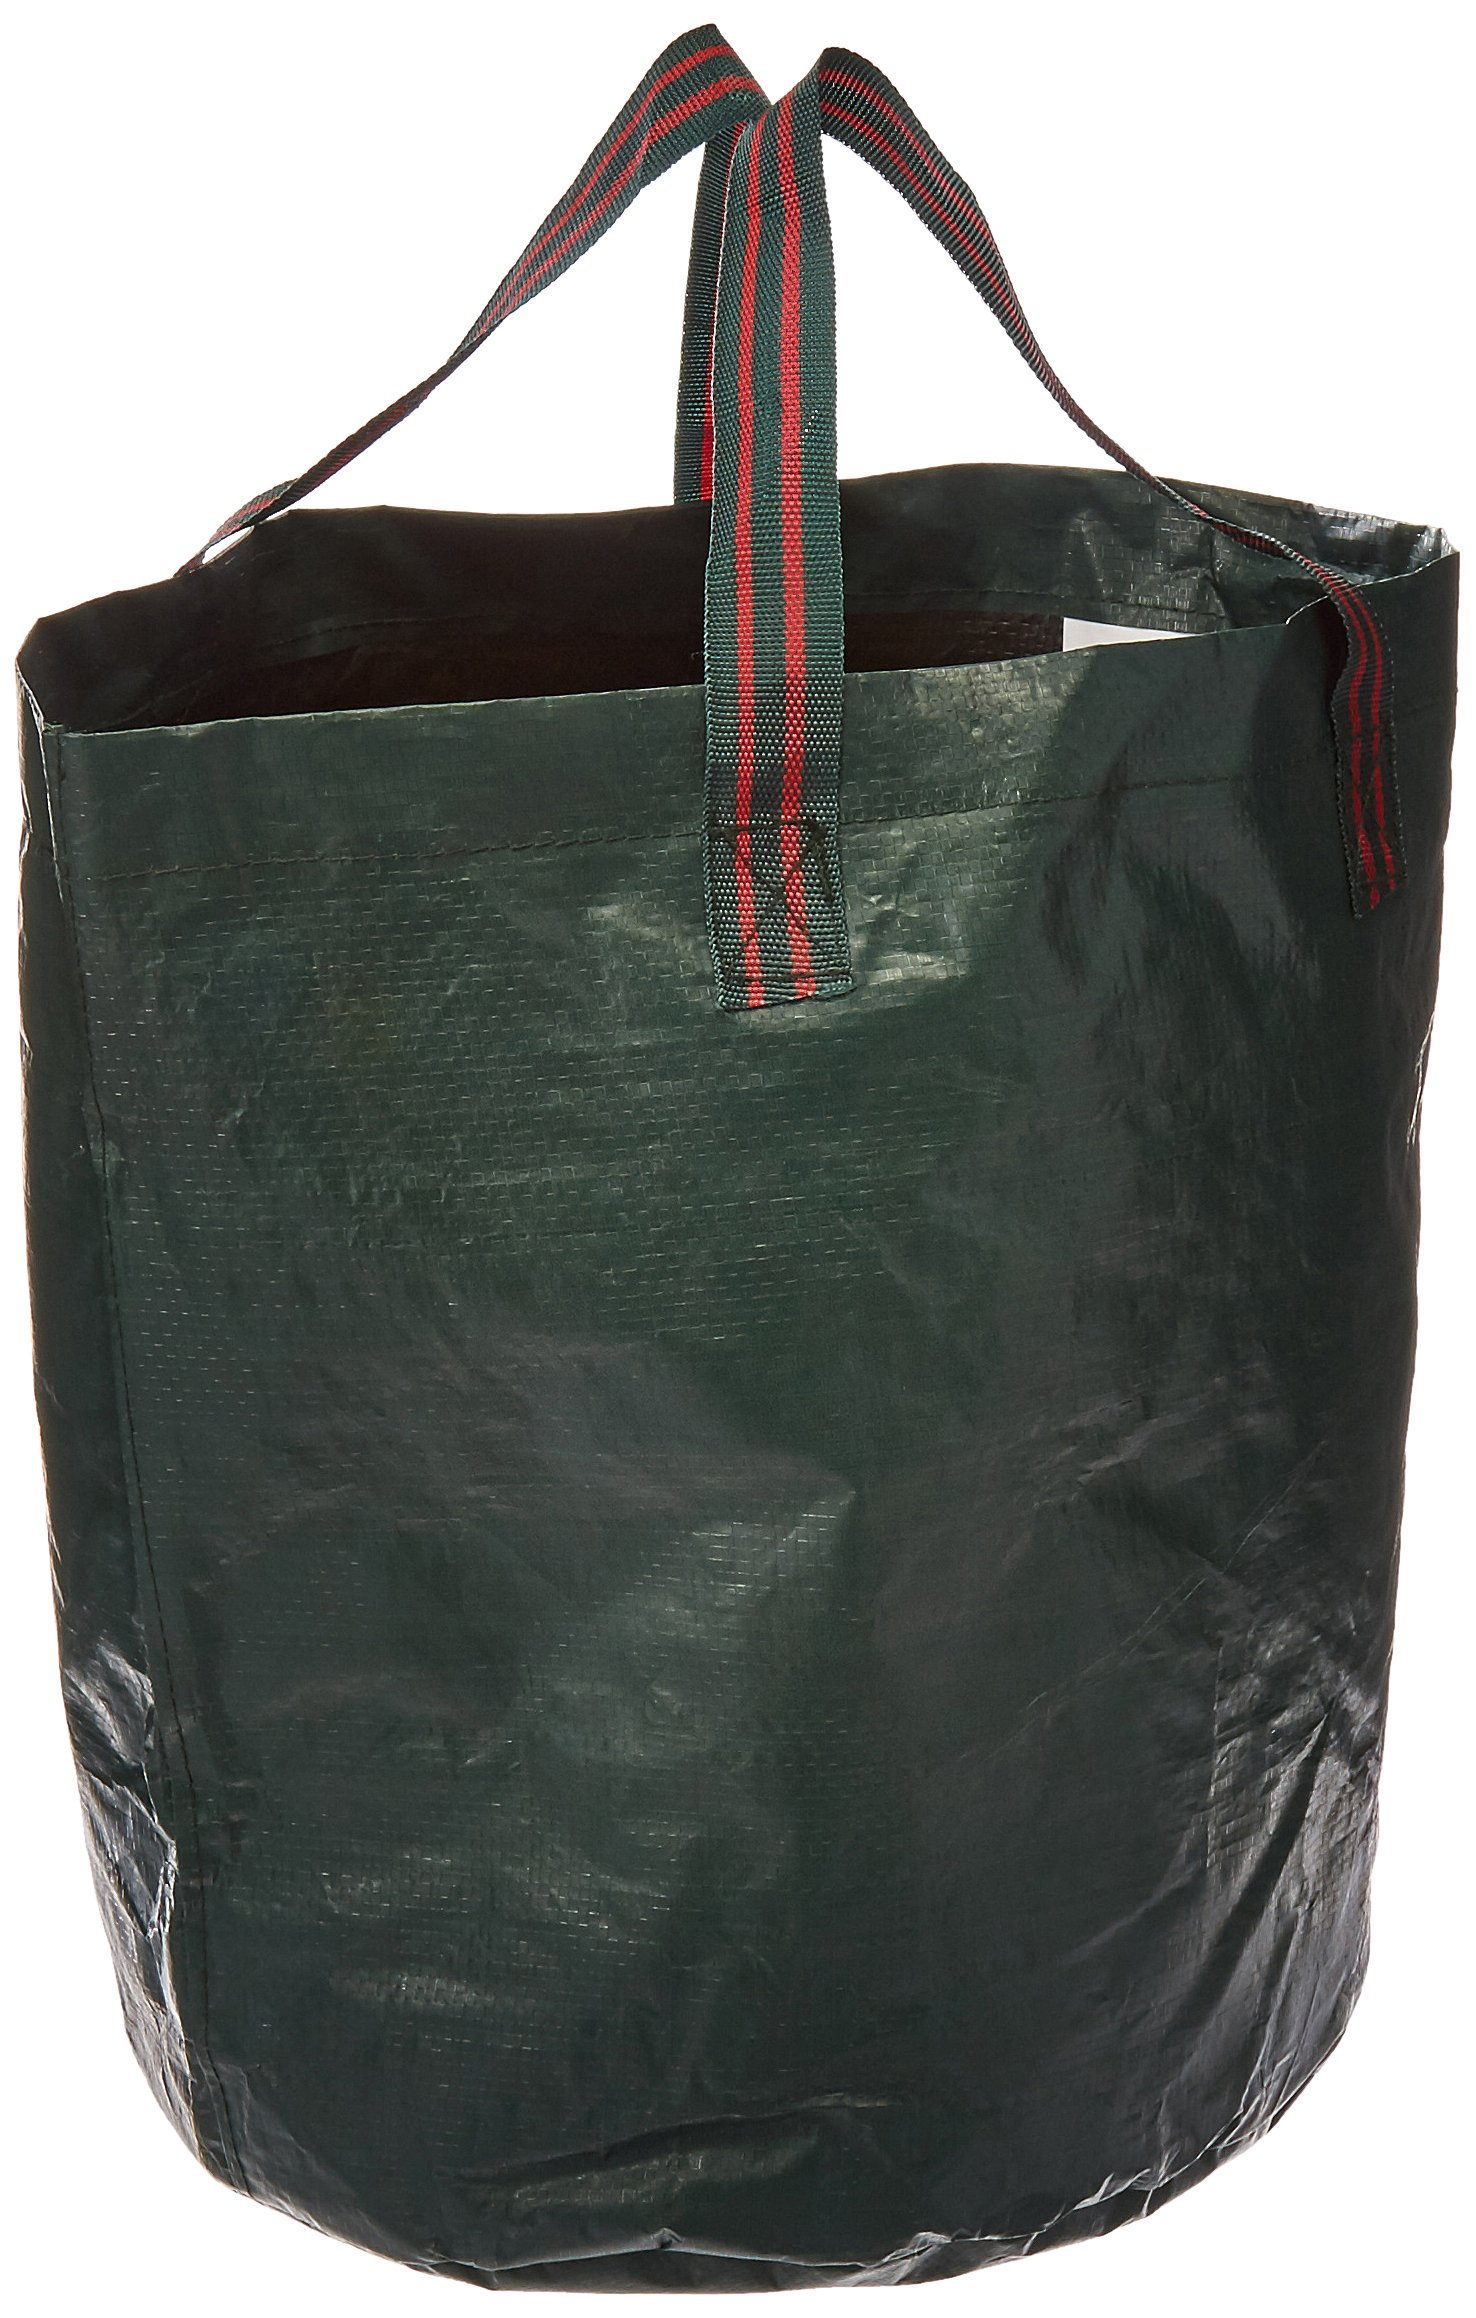 Bosmere K715 Patio Tomato Planter Bag, Green, 3-Pack by Bosmere